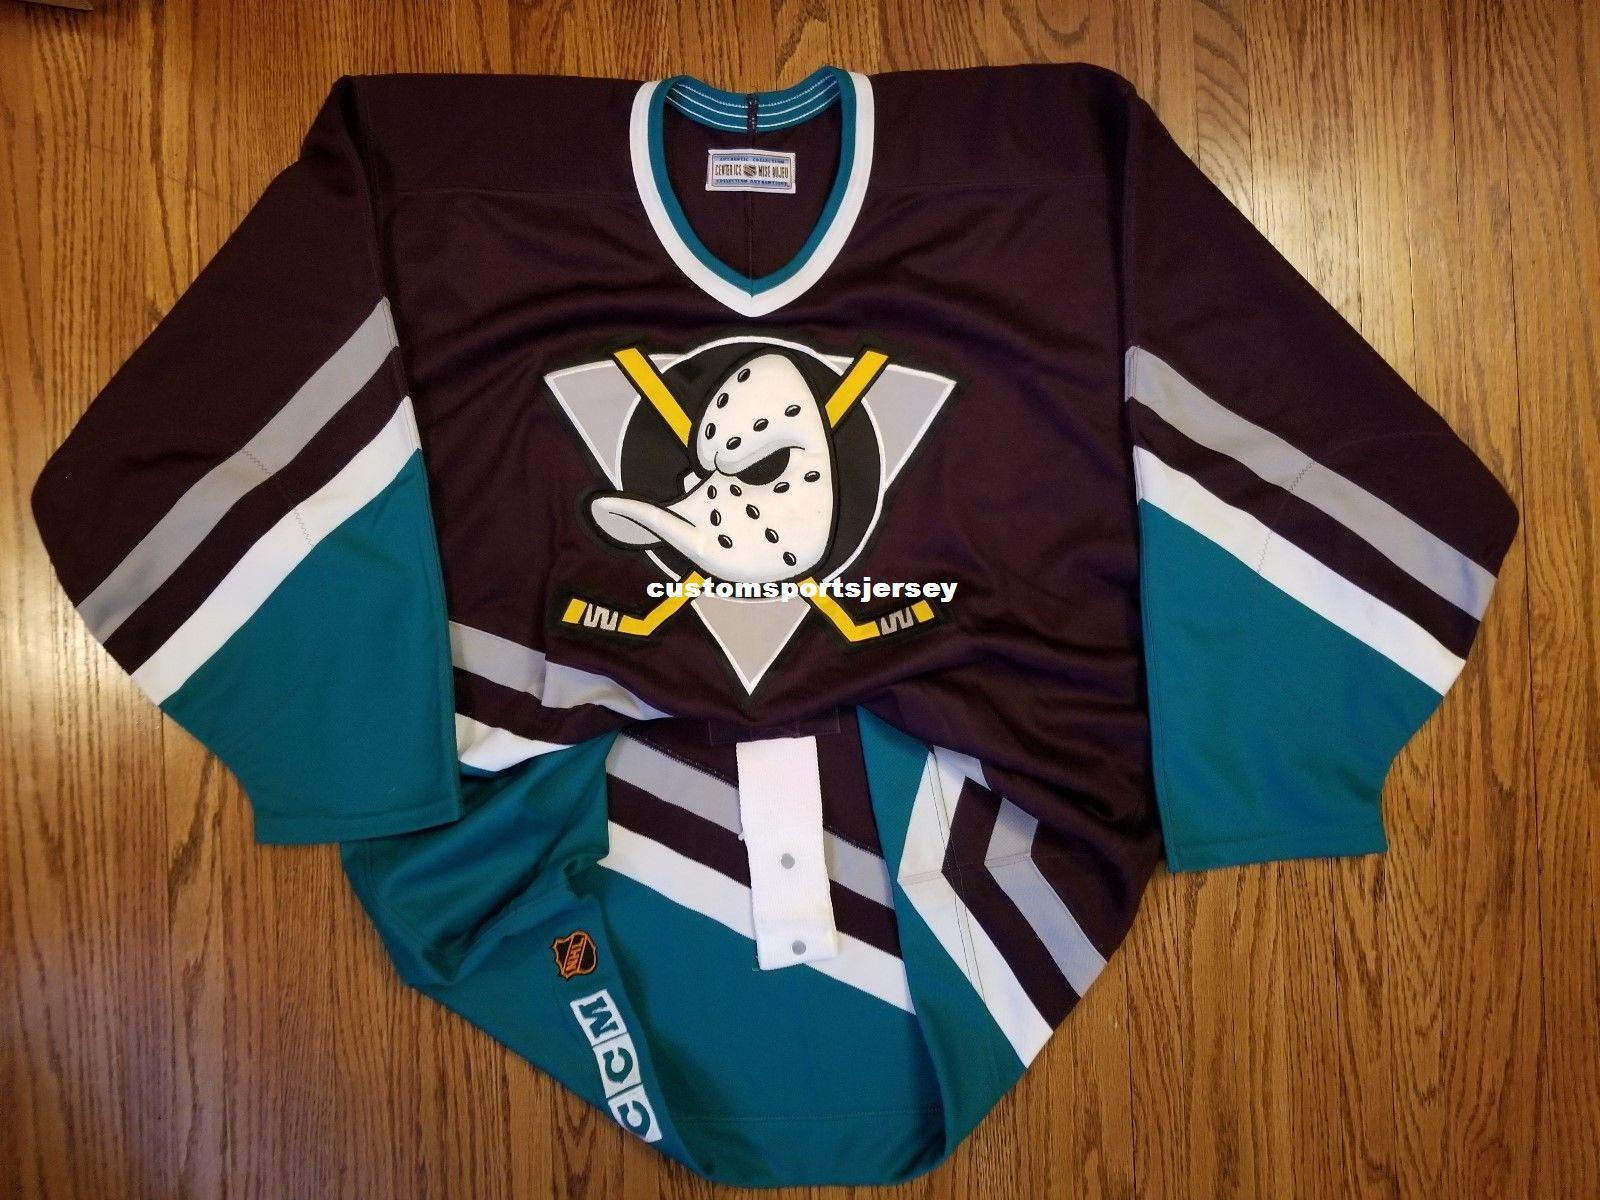 bea6beab 2019 Cheap Custom Anaheim Mighty Ducks Vintage CCM Center Ice Jersey  Stitched Retro Hockey Jersey Customize Any Name Number XS 5XL From  Customsportsjersey, ...